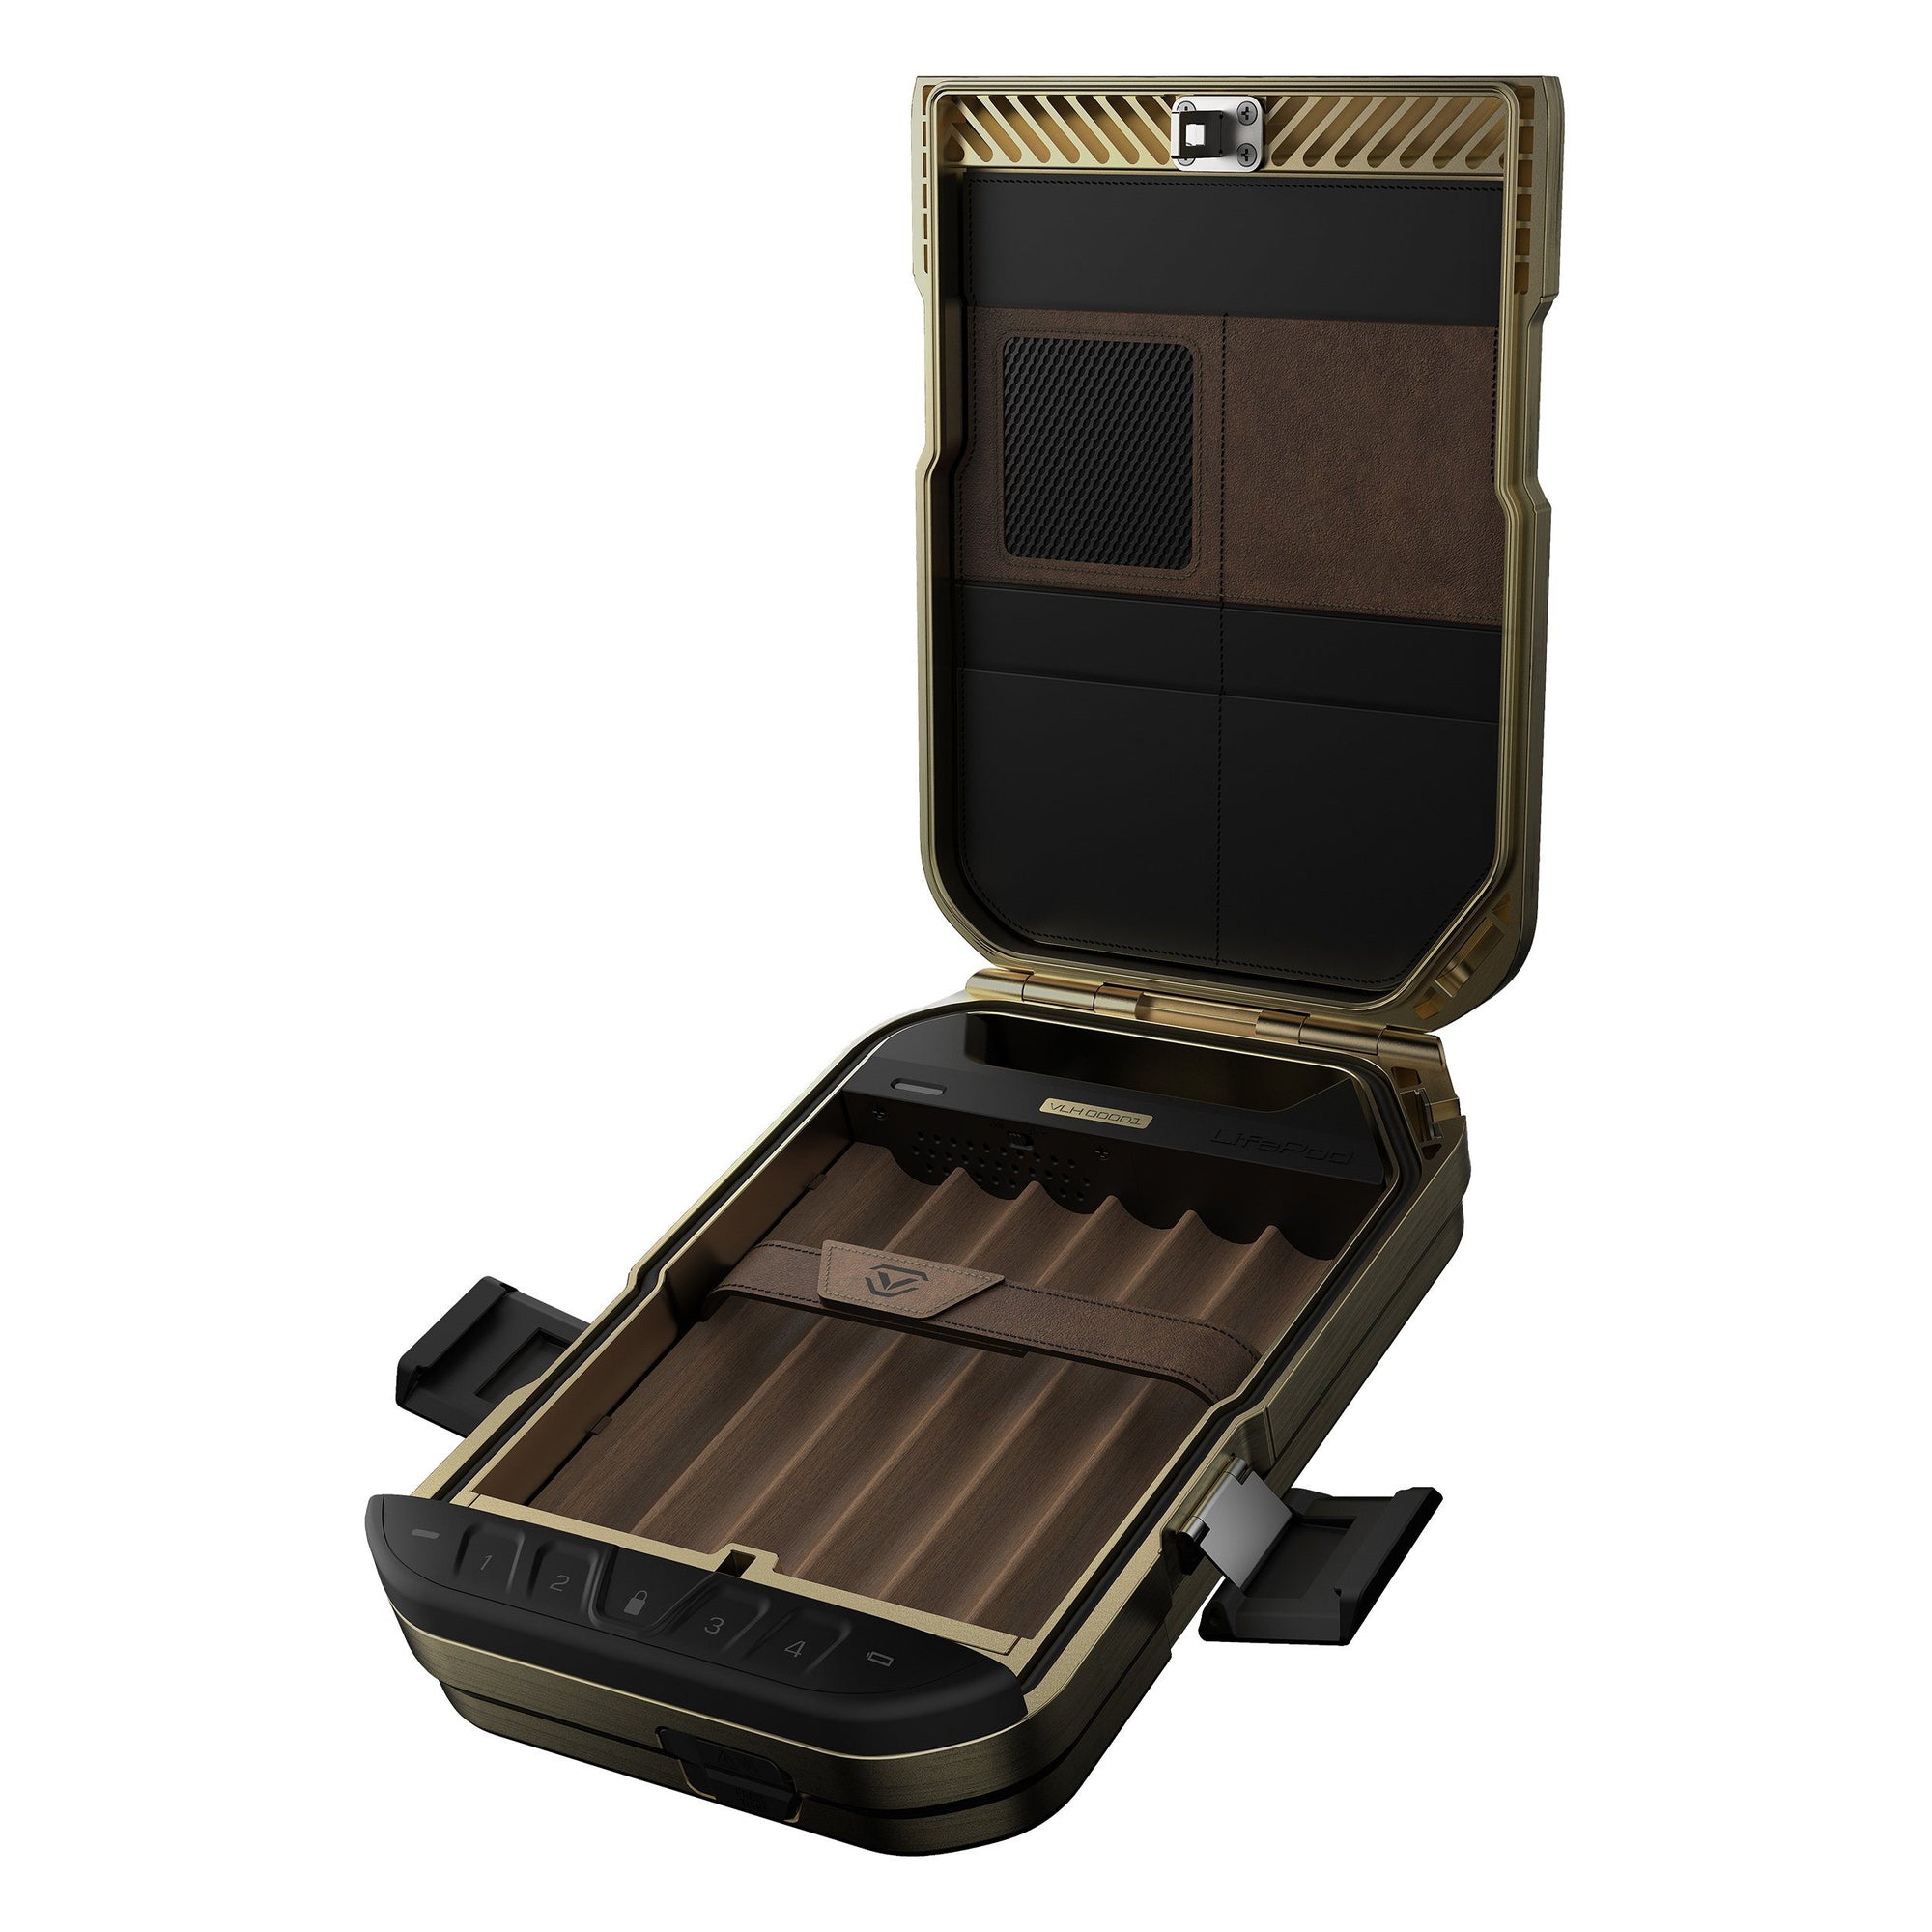 Security Safes - Vaultek Portable Lifepod Humidor Lockbox